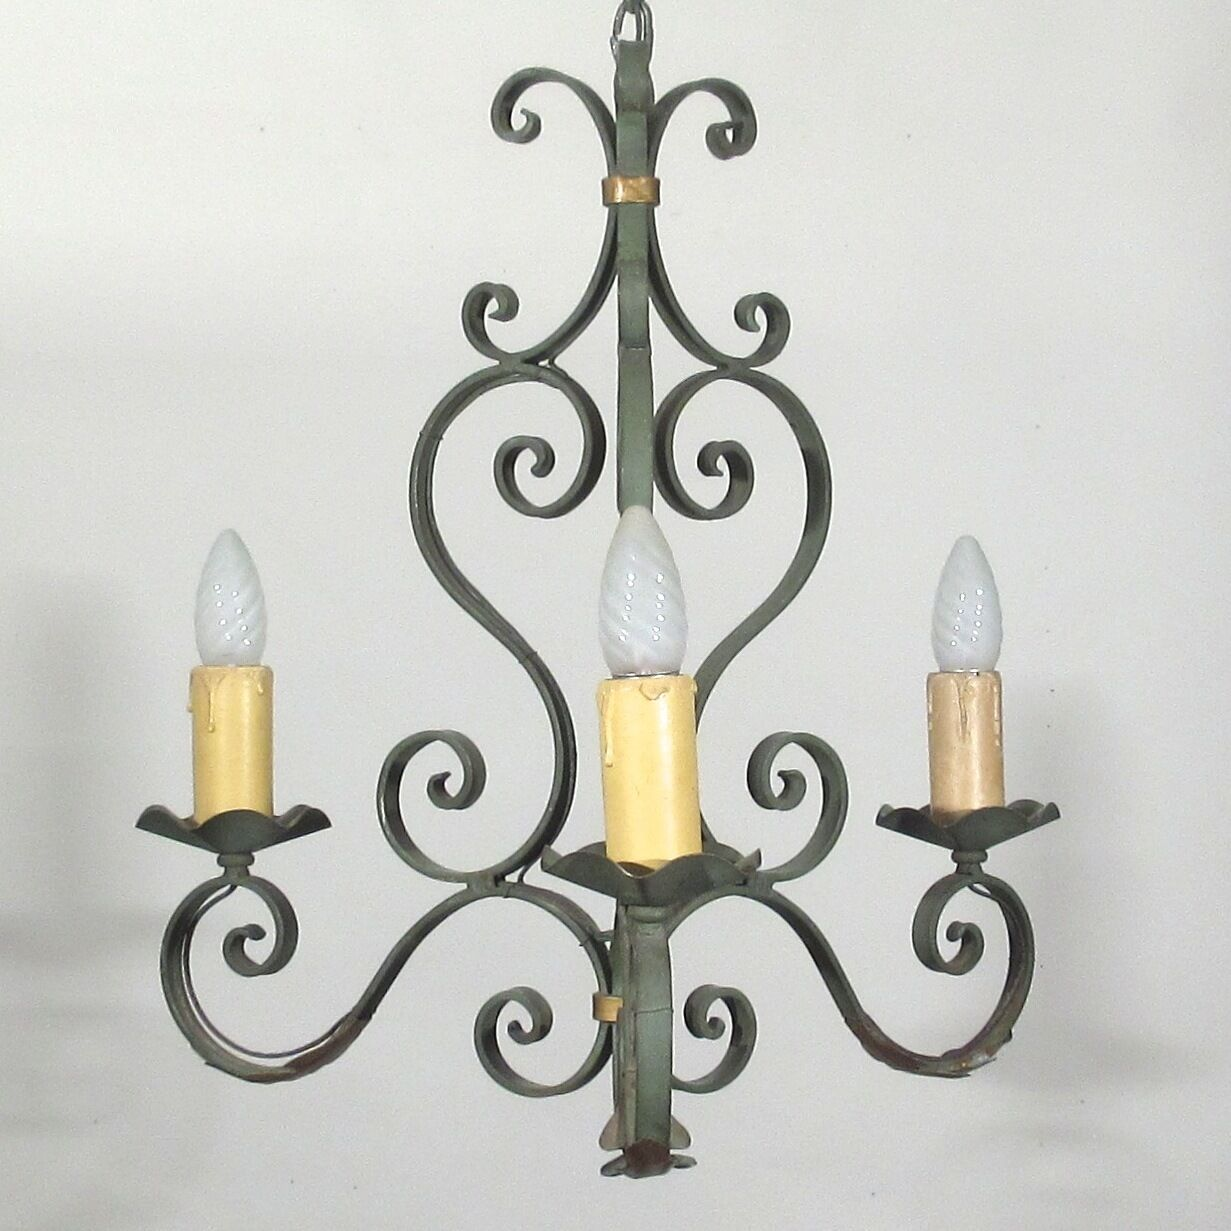 Authentic Old French Wrought Iron Chandelier, Morning Glory, Acanthus Leaves